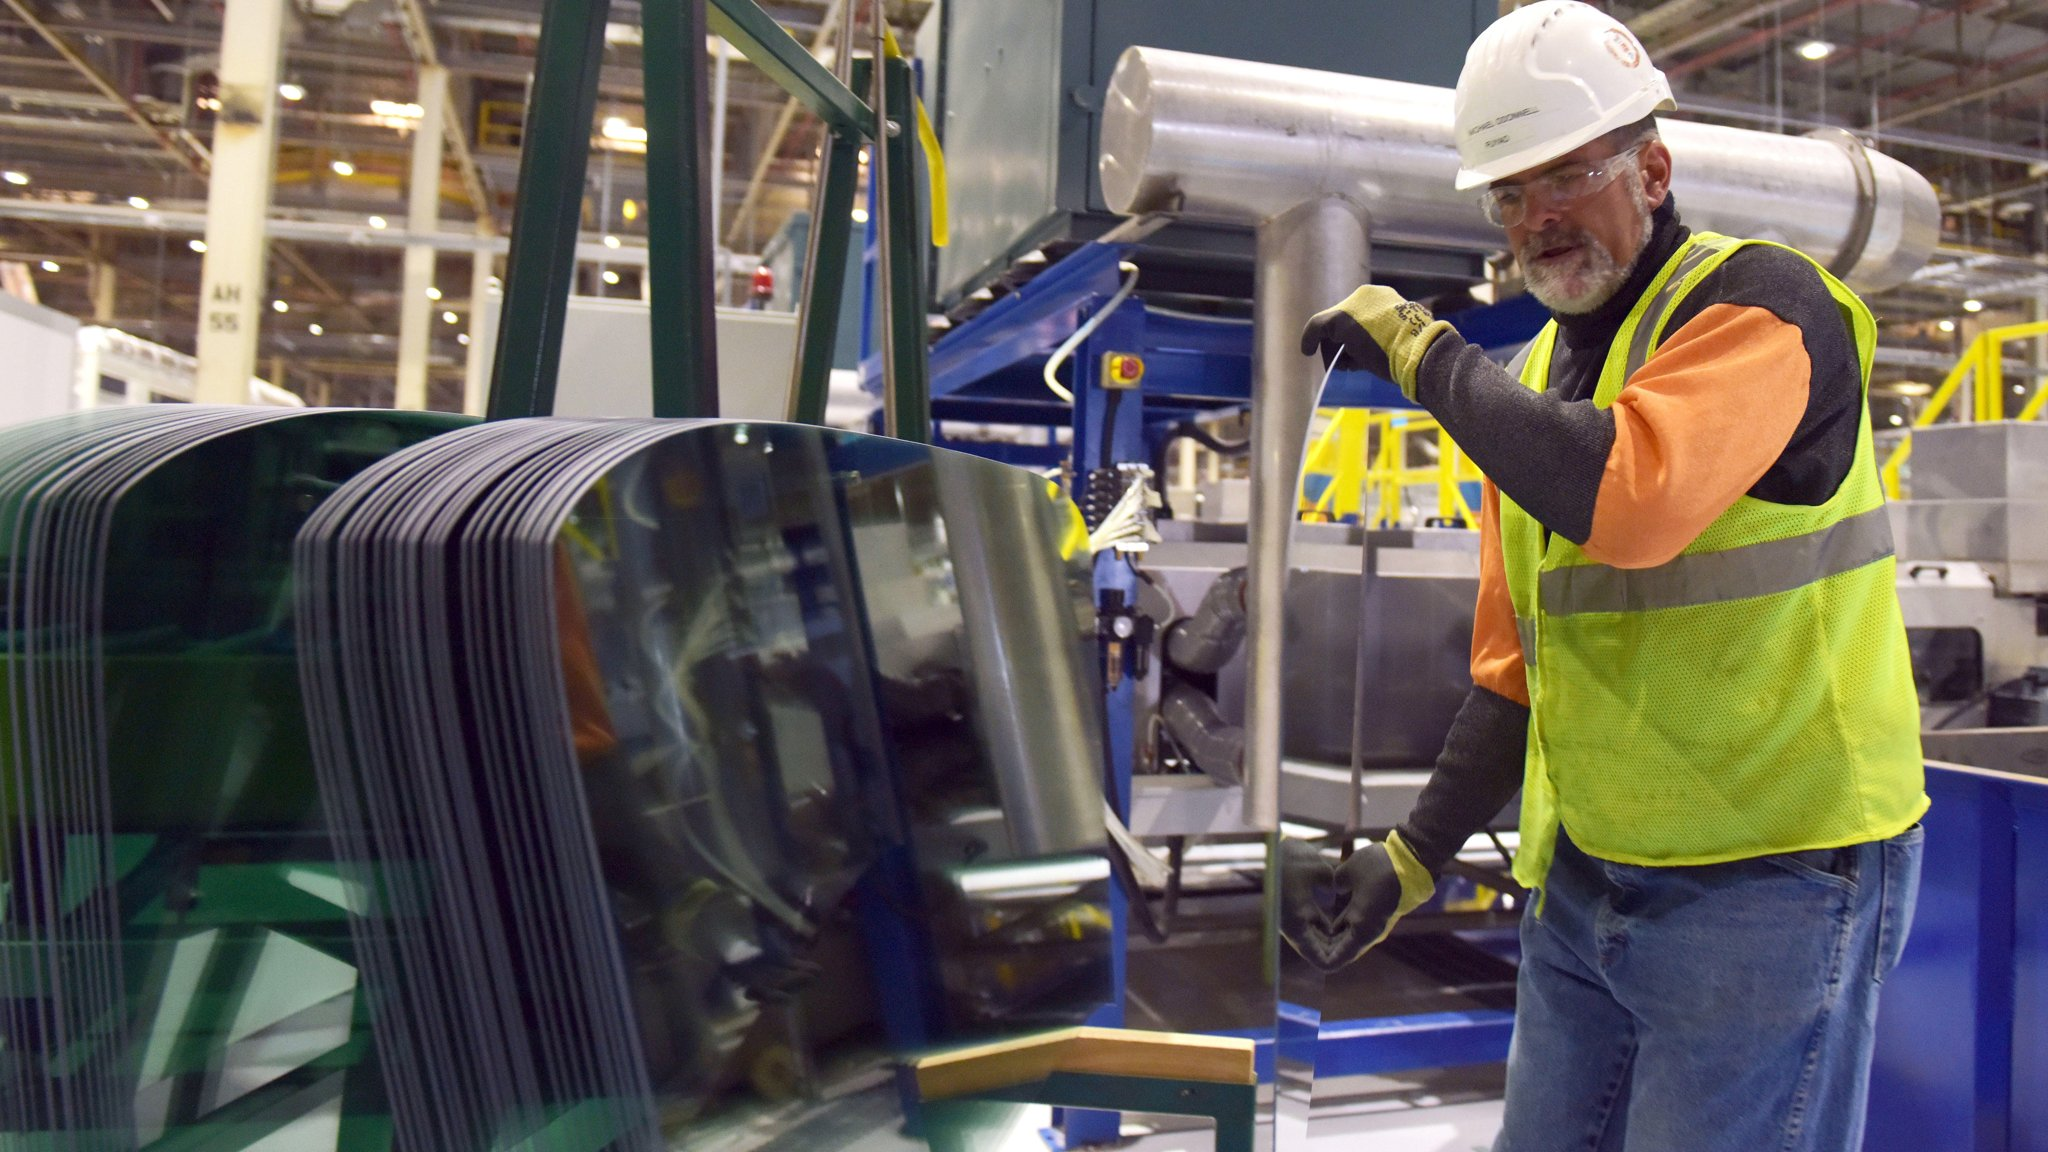 F2H62W Moraine, USA. 5th Aug, 2015. Michael o'donnell works at a factory of Fuyao Glass America in Moraine, south of Dayton, Ohio, the United States, Aug. 5, 2015. Fuyao Glass Industry Group, the largest automotive glass supplier in China, invested over 360 million U.S. dollars to build an automobile glass factory in Moraine, Ohio, and will create over 1,500 jobs locally. © Yin Bogu/Xinhua/Alamy Live News